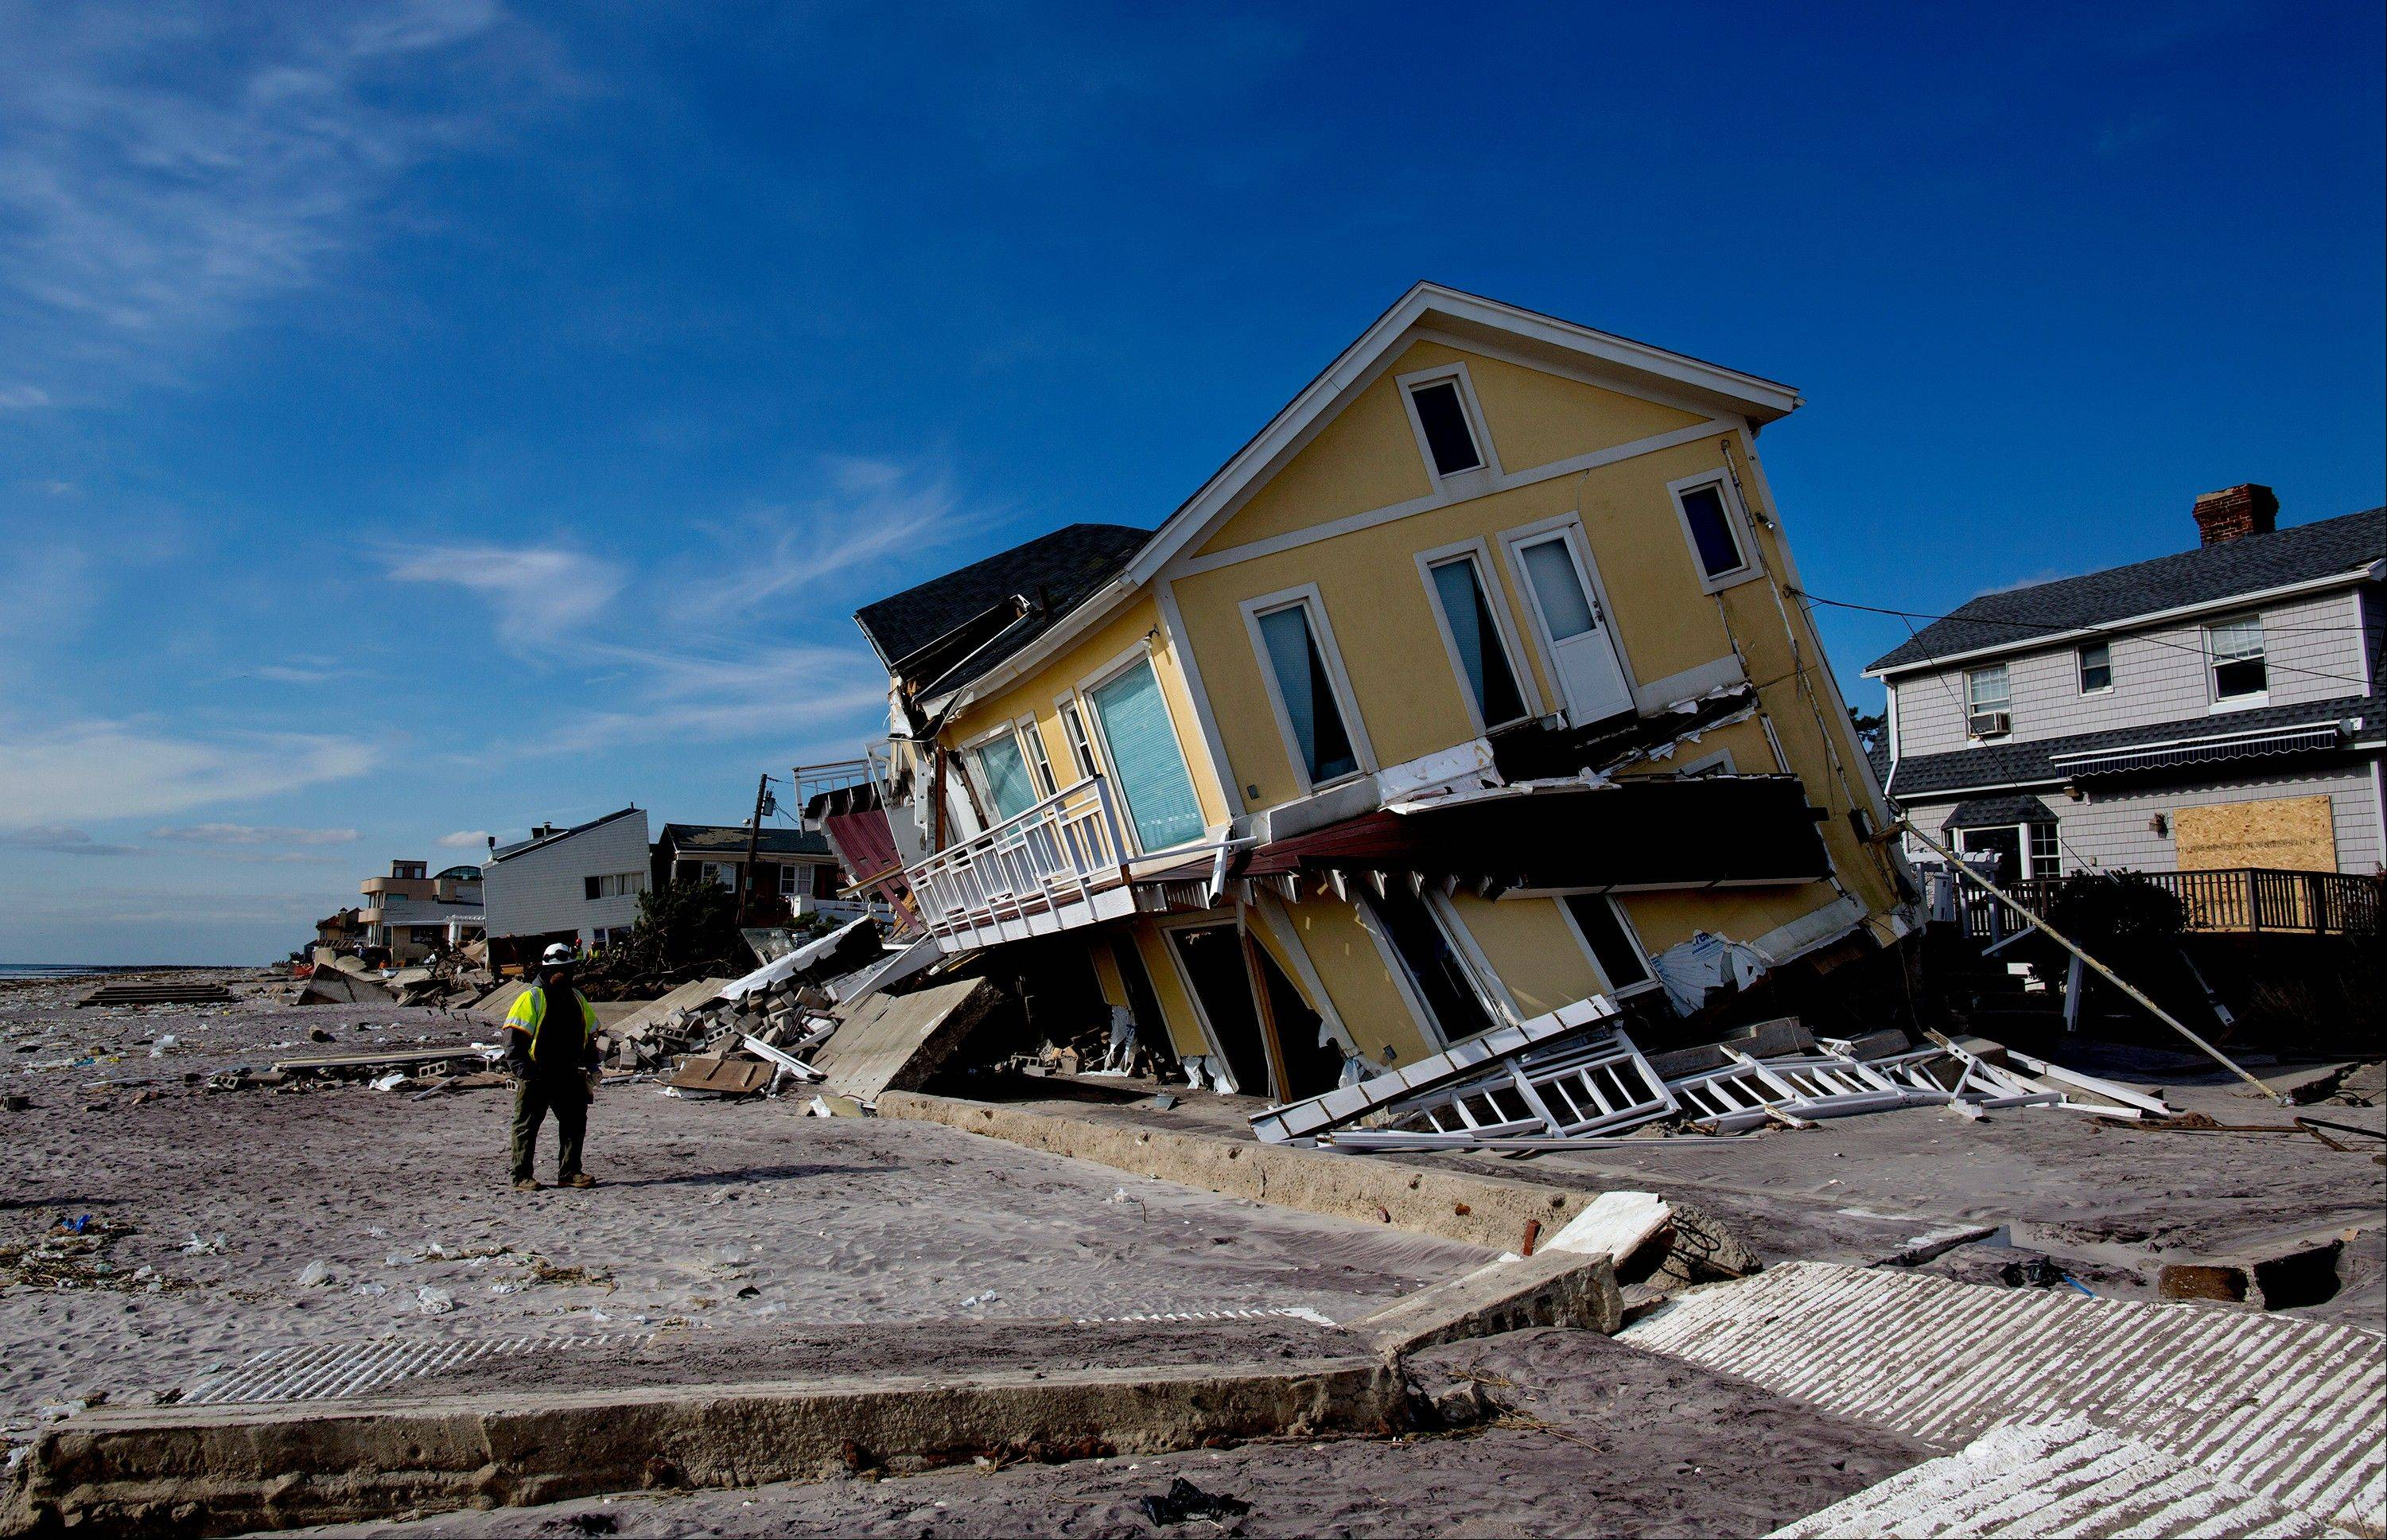 A damaged home tilts to one side along the beach in the Belle Harbor section of the borough of Queens, New York, in the wake of Superstorm Sandy on Monday. A coastal storm that threatens to complicate the Superstorm Sandy cleanup efforts now looks like it will be weaker than expected, experts say.